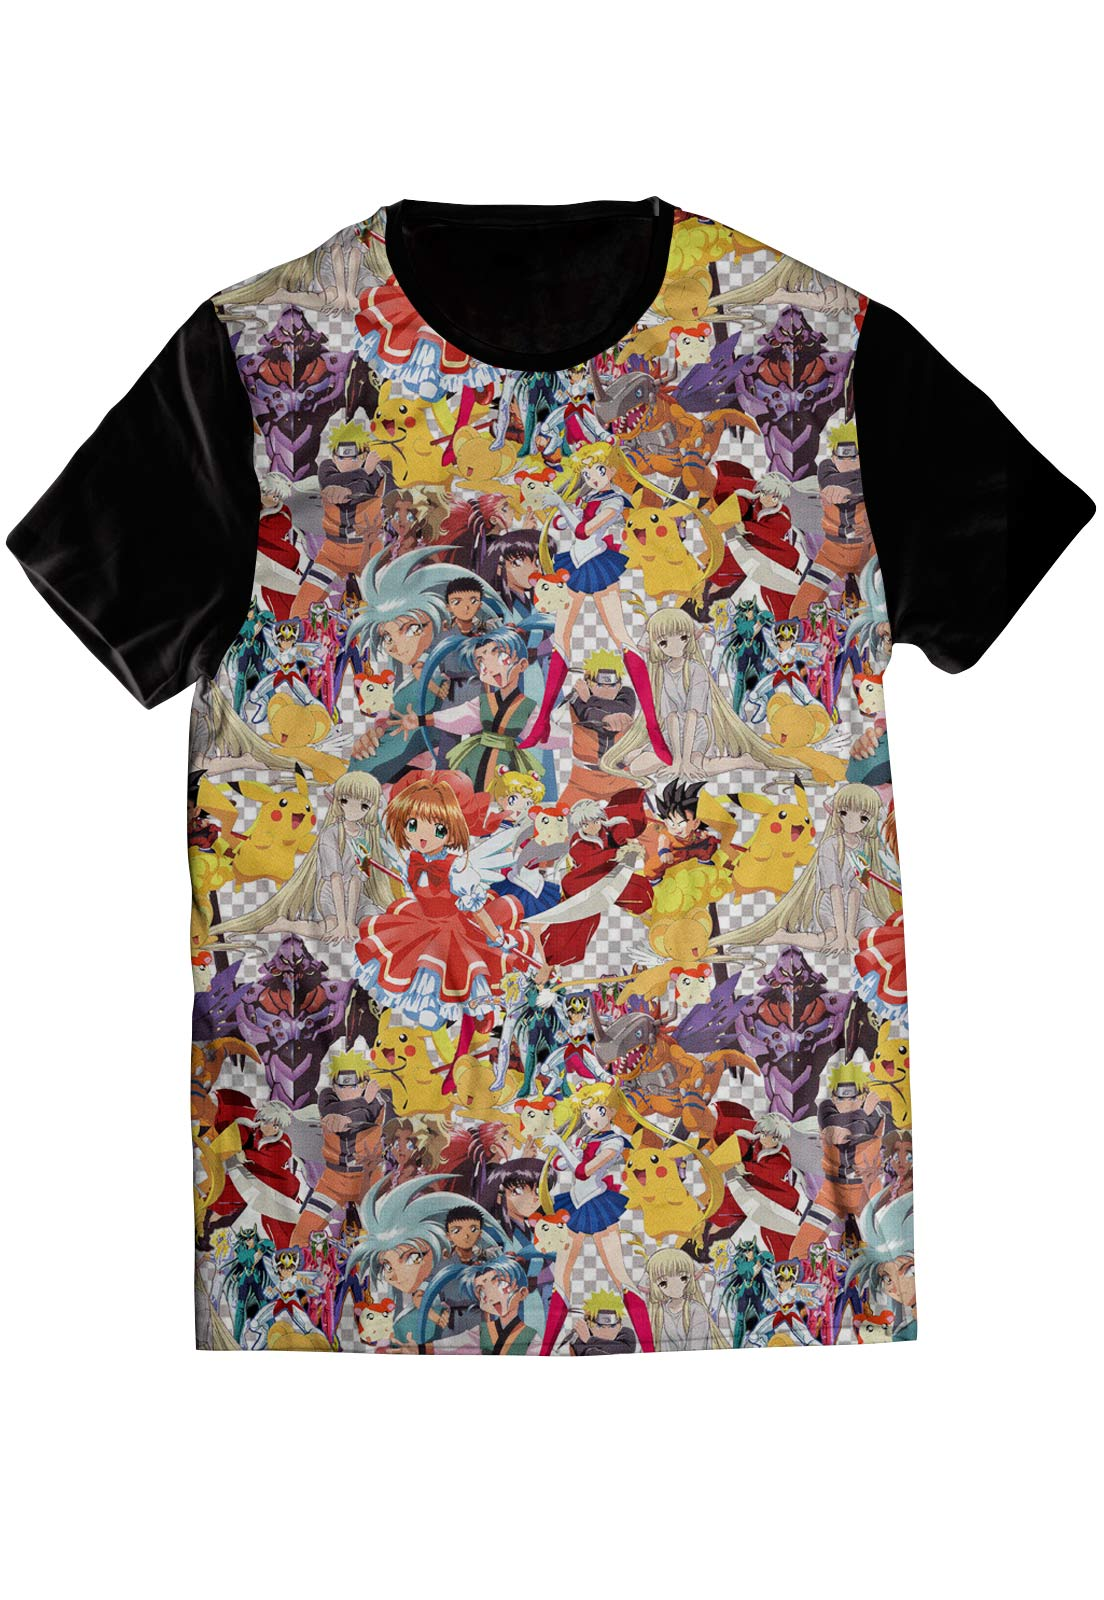 Camiseta ElephunK Estampada Geek Anime Lovers Preta